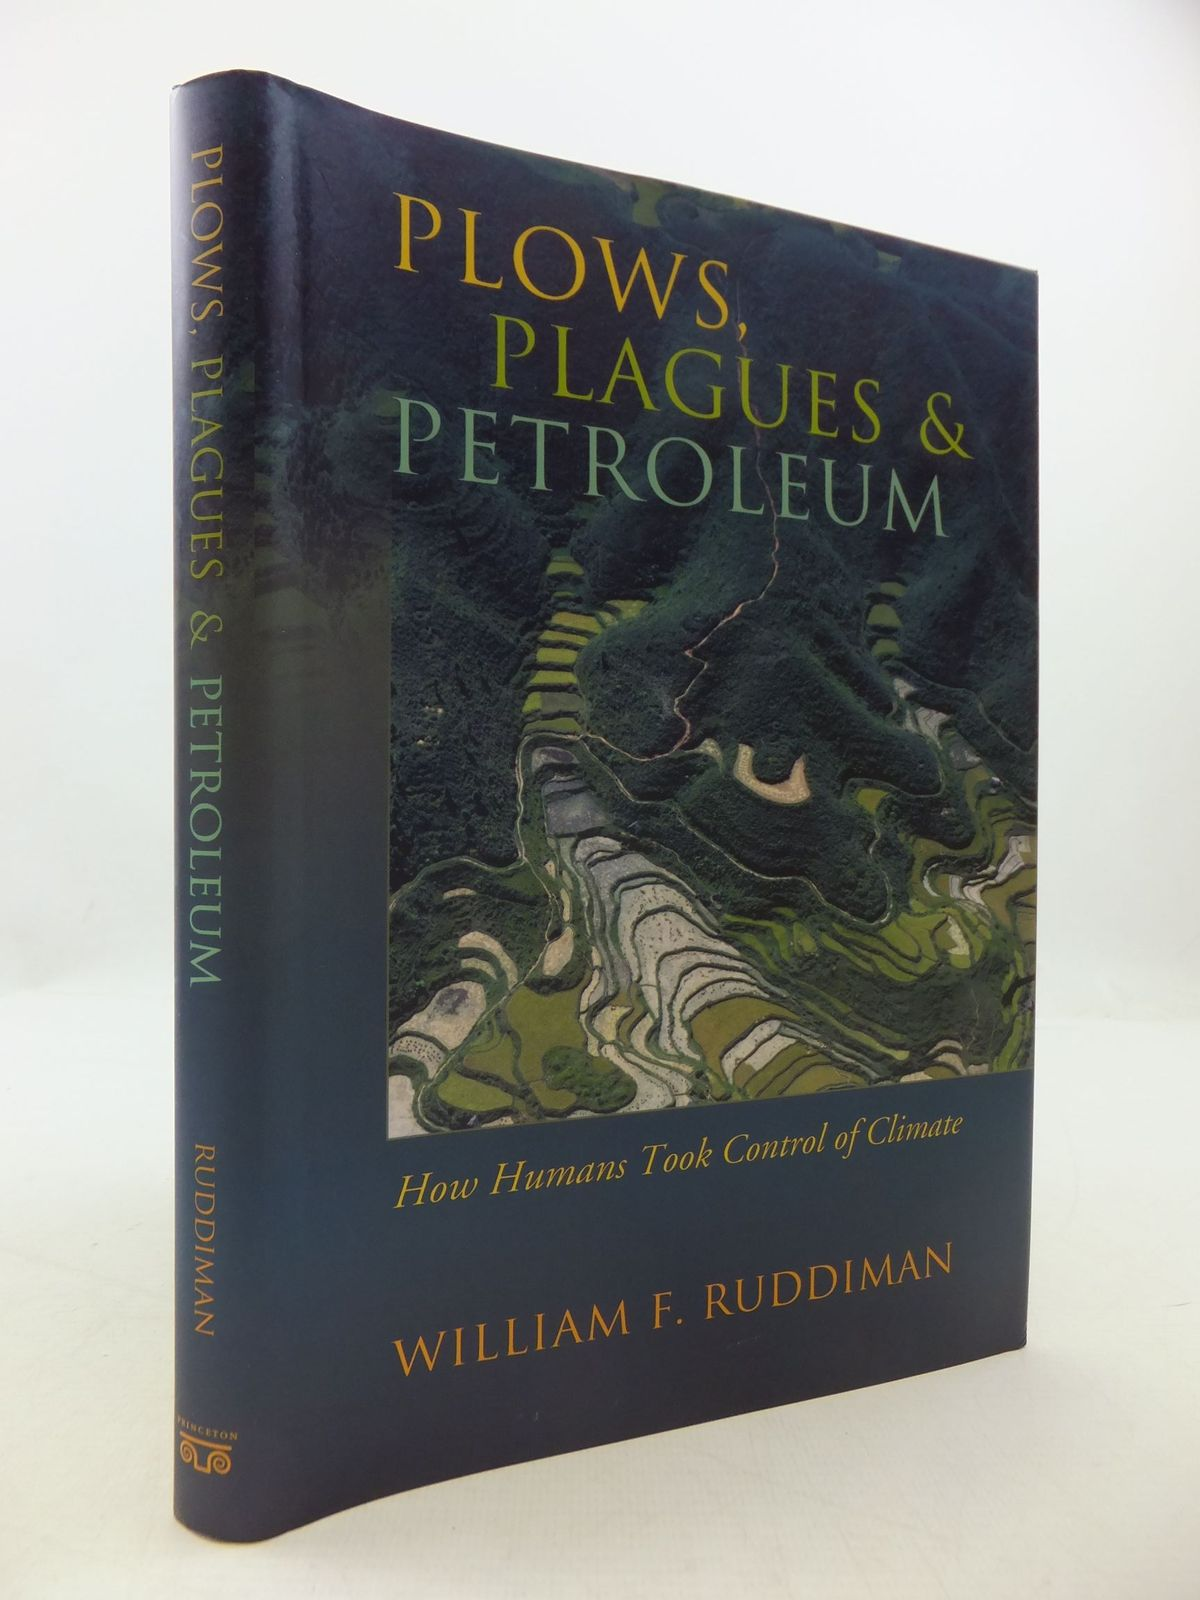 Photo of PLOWS, PLAGUES, AND PETROLEUM HOW HUMANS TOOK CONTROL OF CLIMATE written by Ruddiman, William F. published by Princeton University Press (STOCK CODE: 2111723)  for sale by Stella & Rose's Books